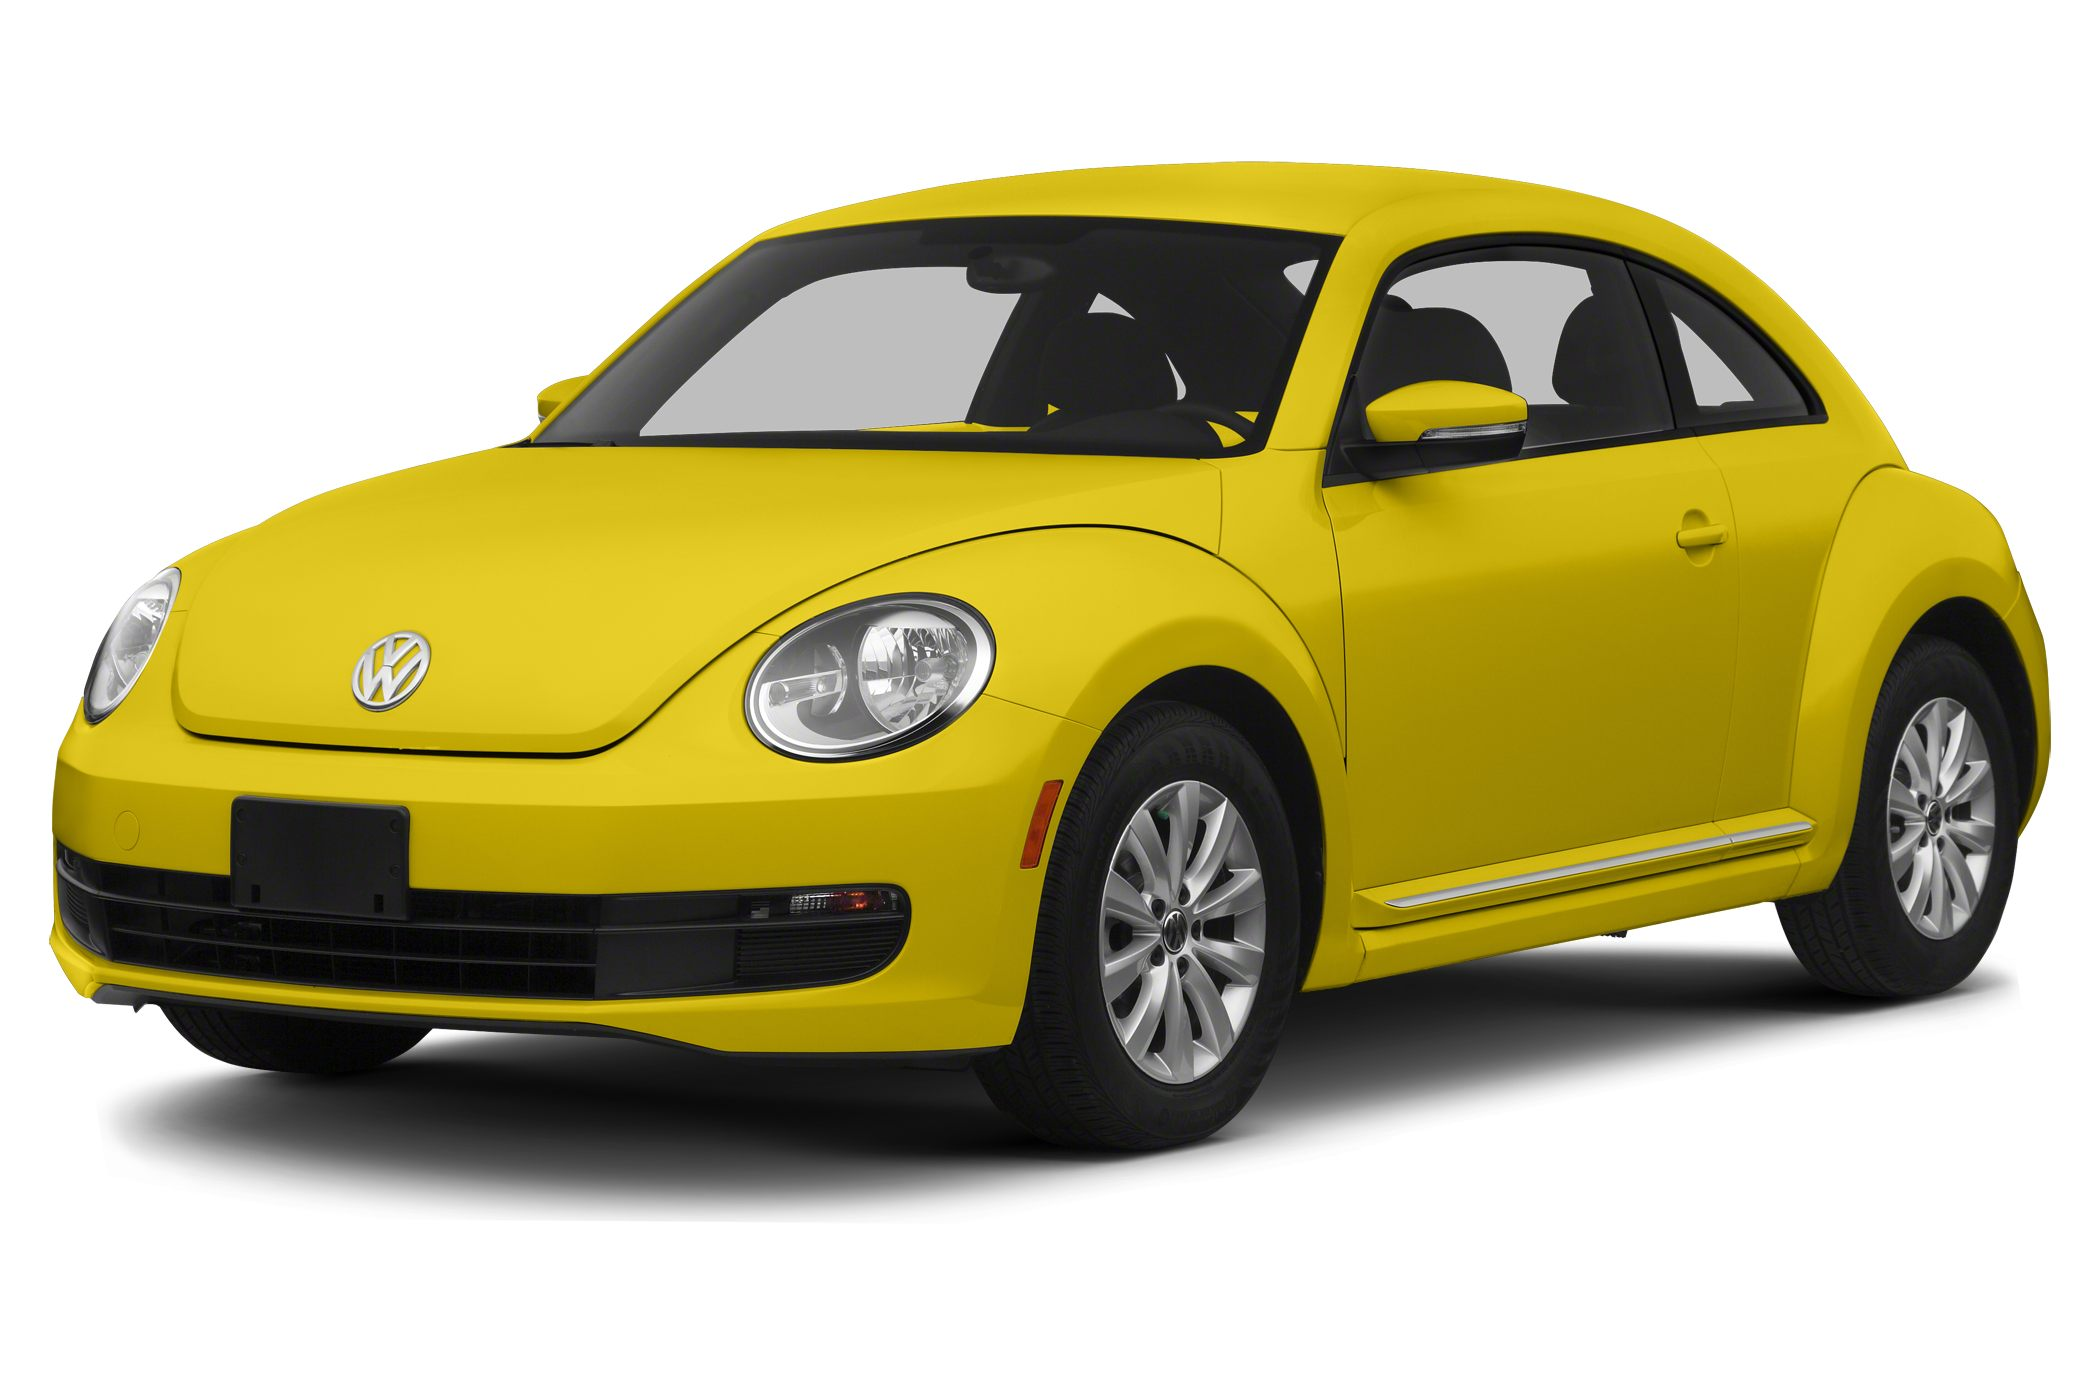 2012 Volkswagen Beetle 25 For Internet SalesCall Teresa  866-387-3798It will be my pleasure to a